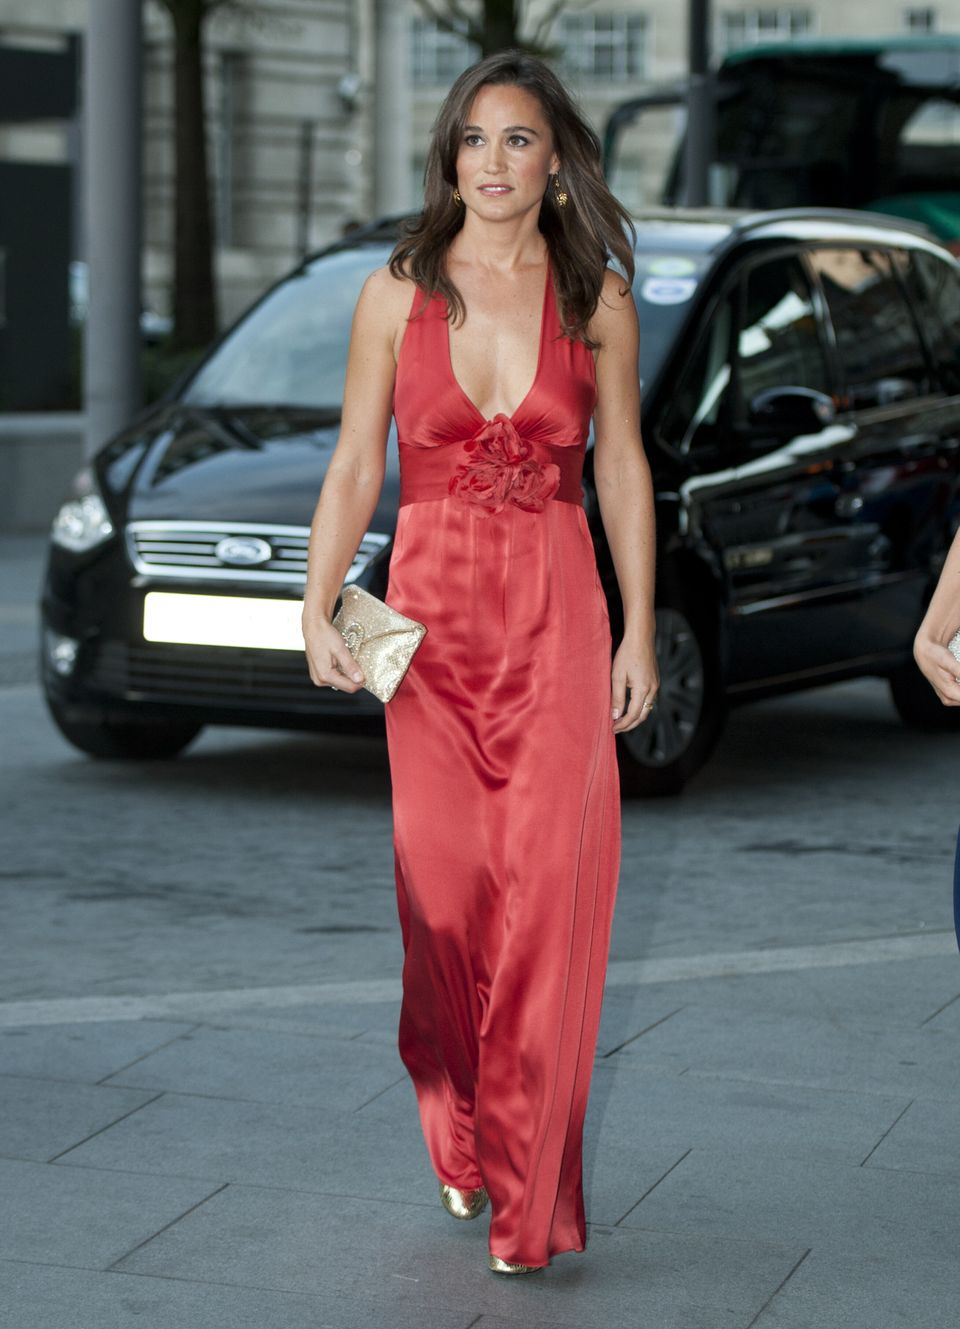 Pippa Middleton's Style Evolution Through The Years 24